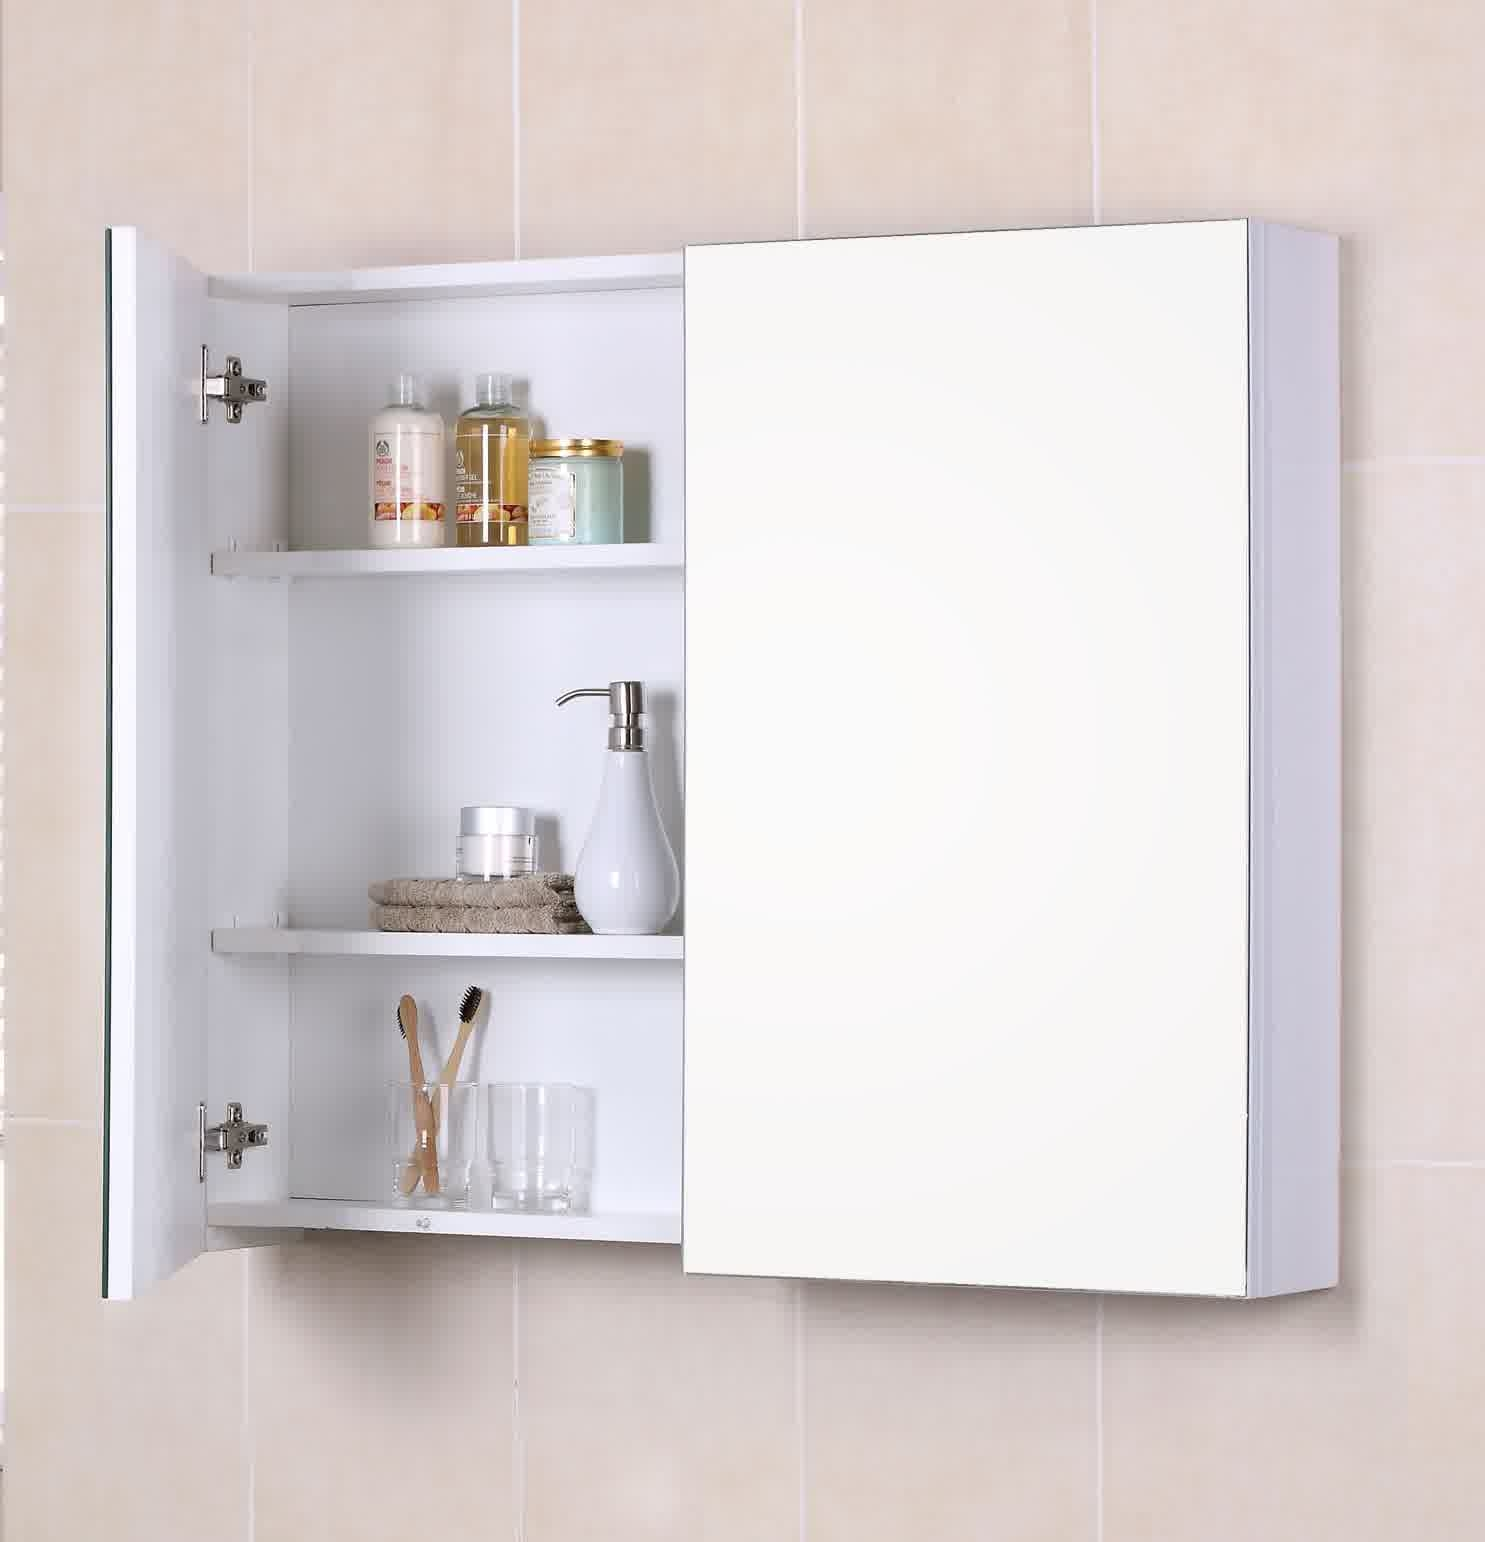 Bathroom Wall Cabinets Without Mirrors